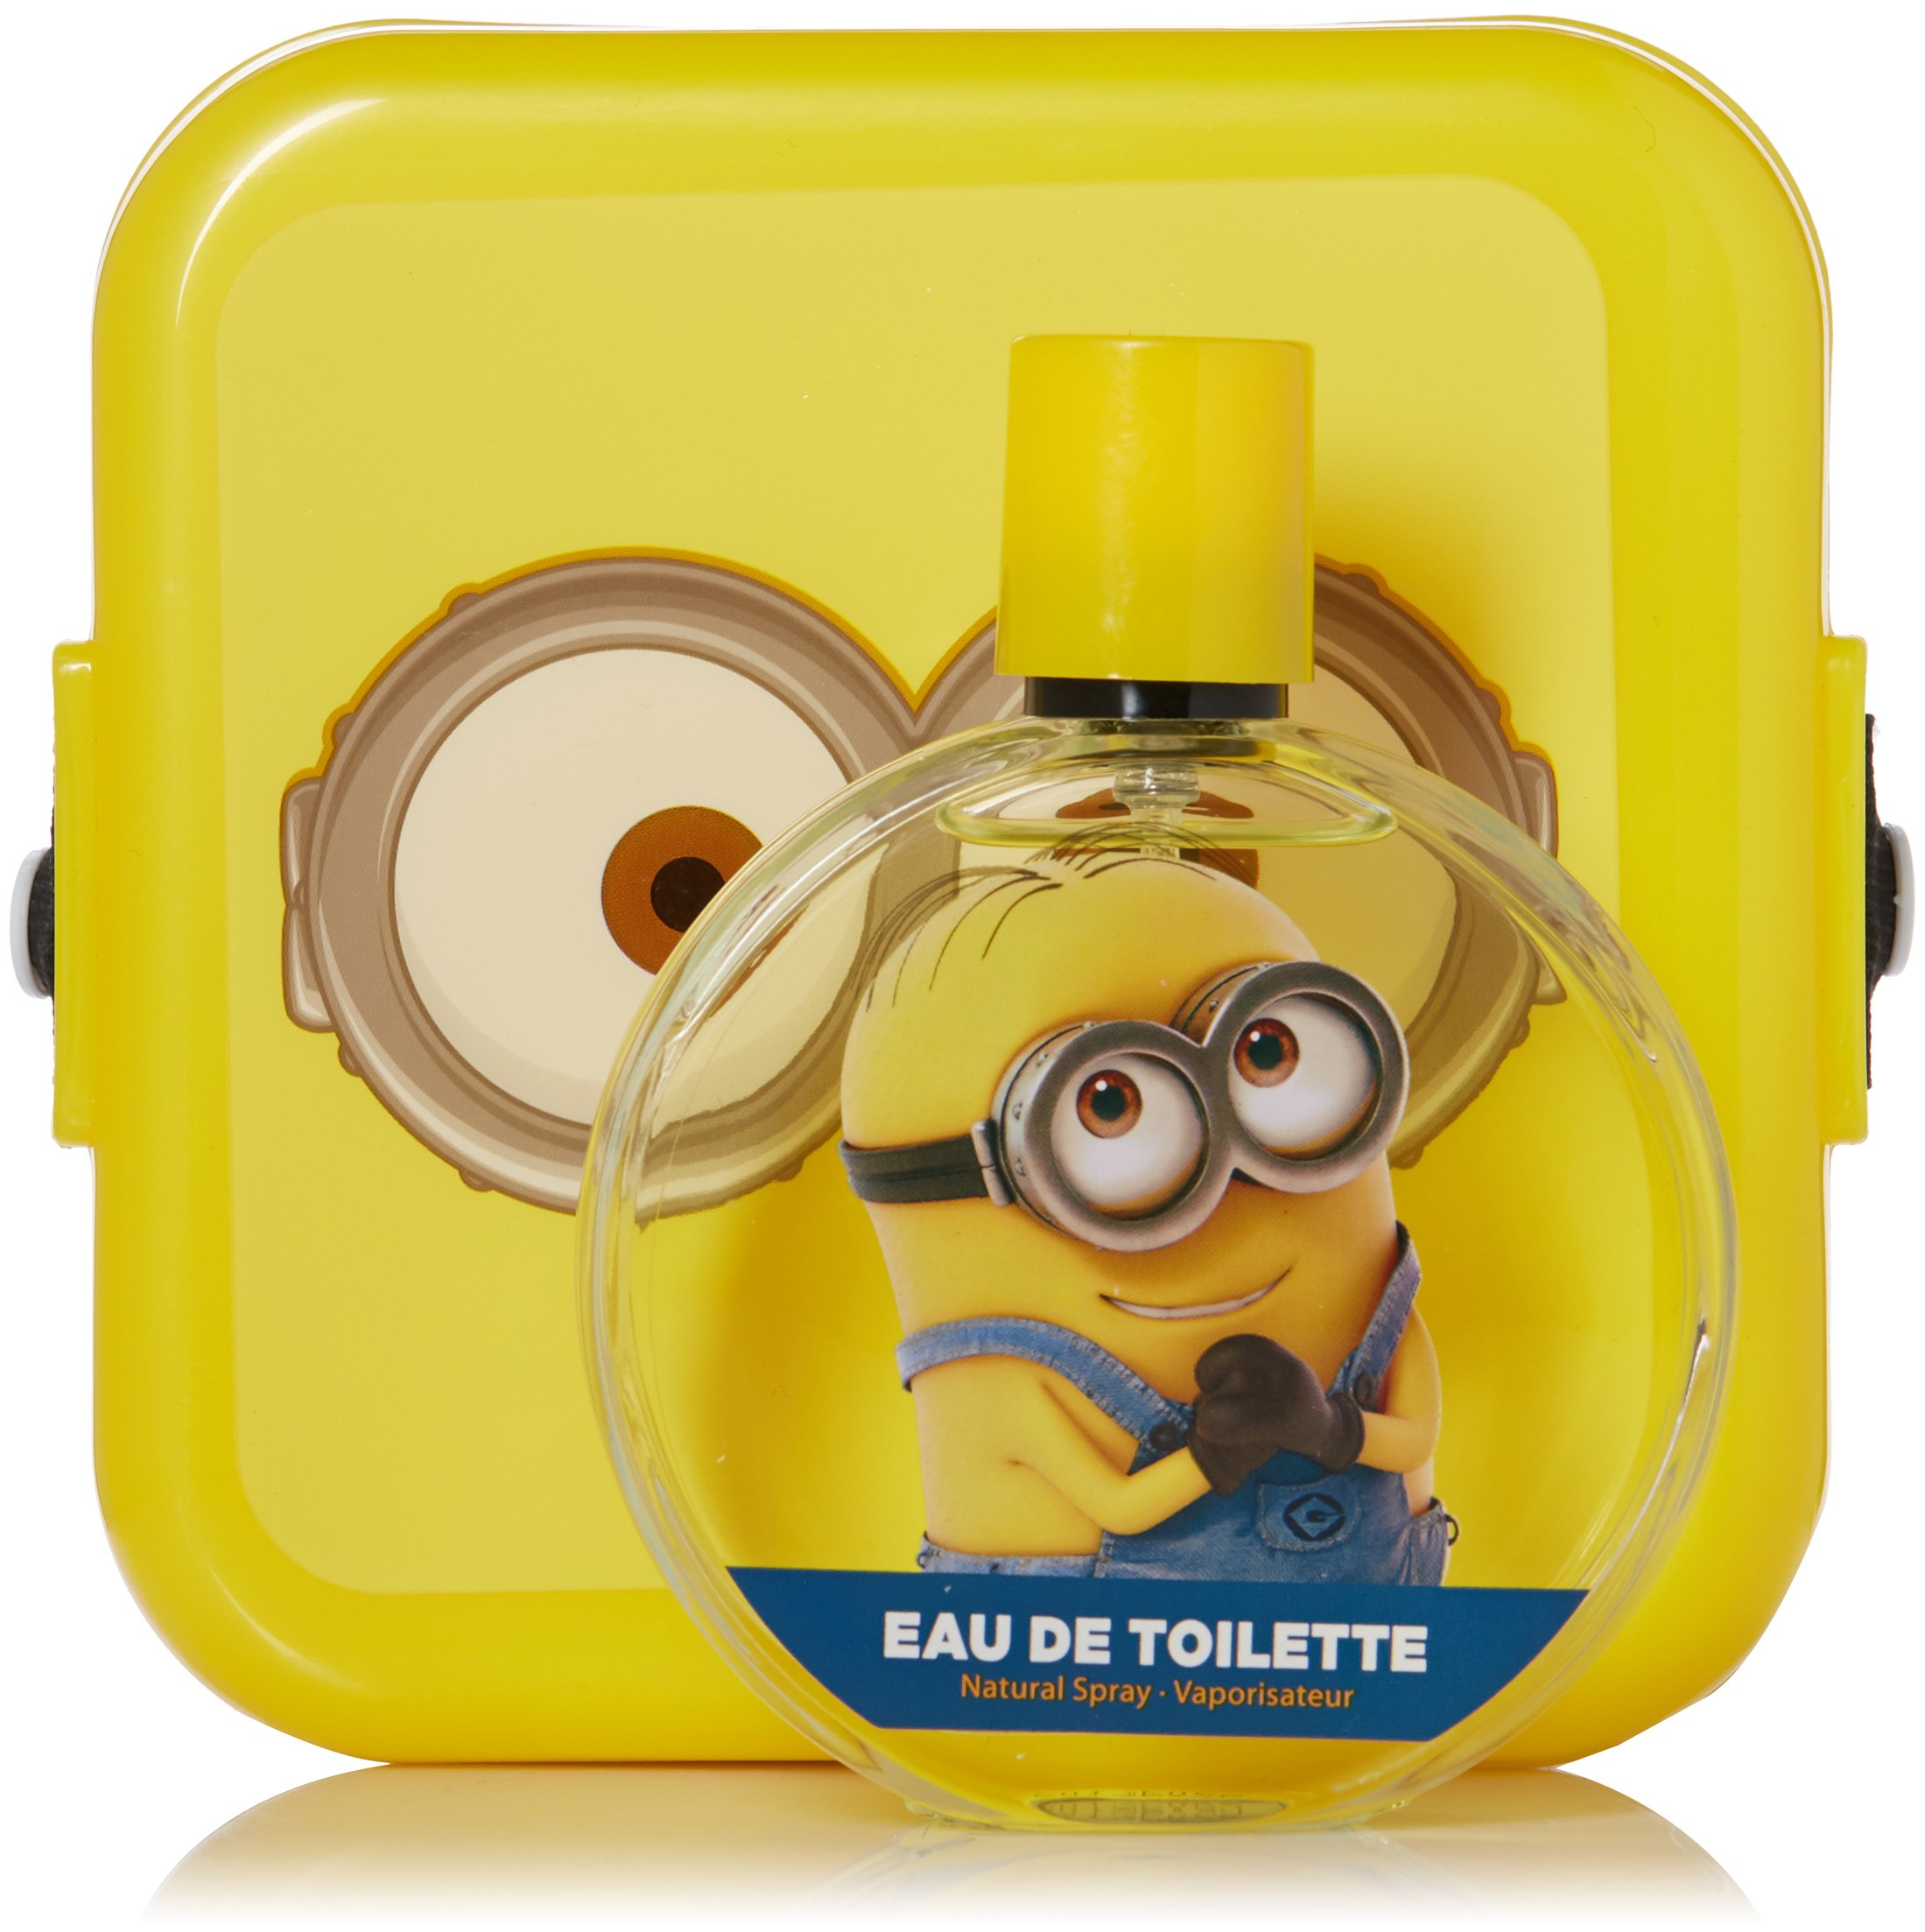 Minions for Kids 2 Piece Gift Set with Edt Spray and Minion Box by Minions